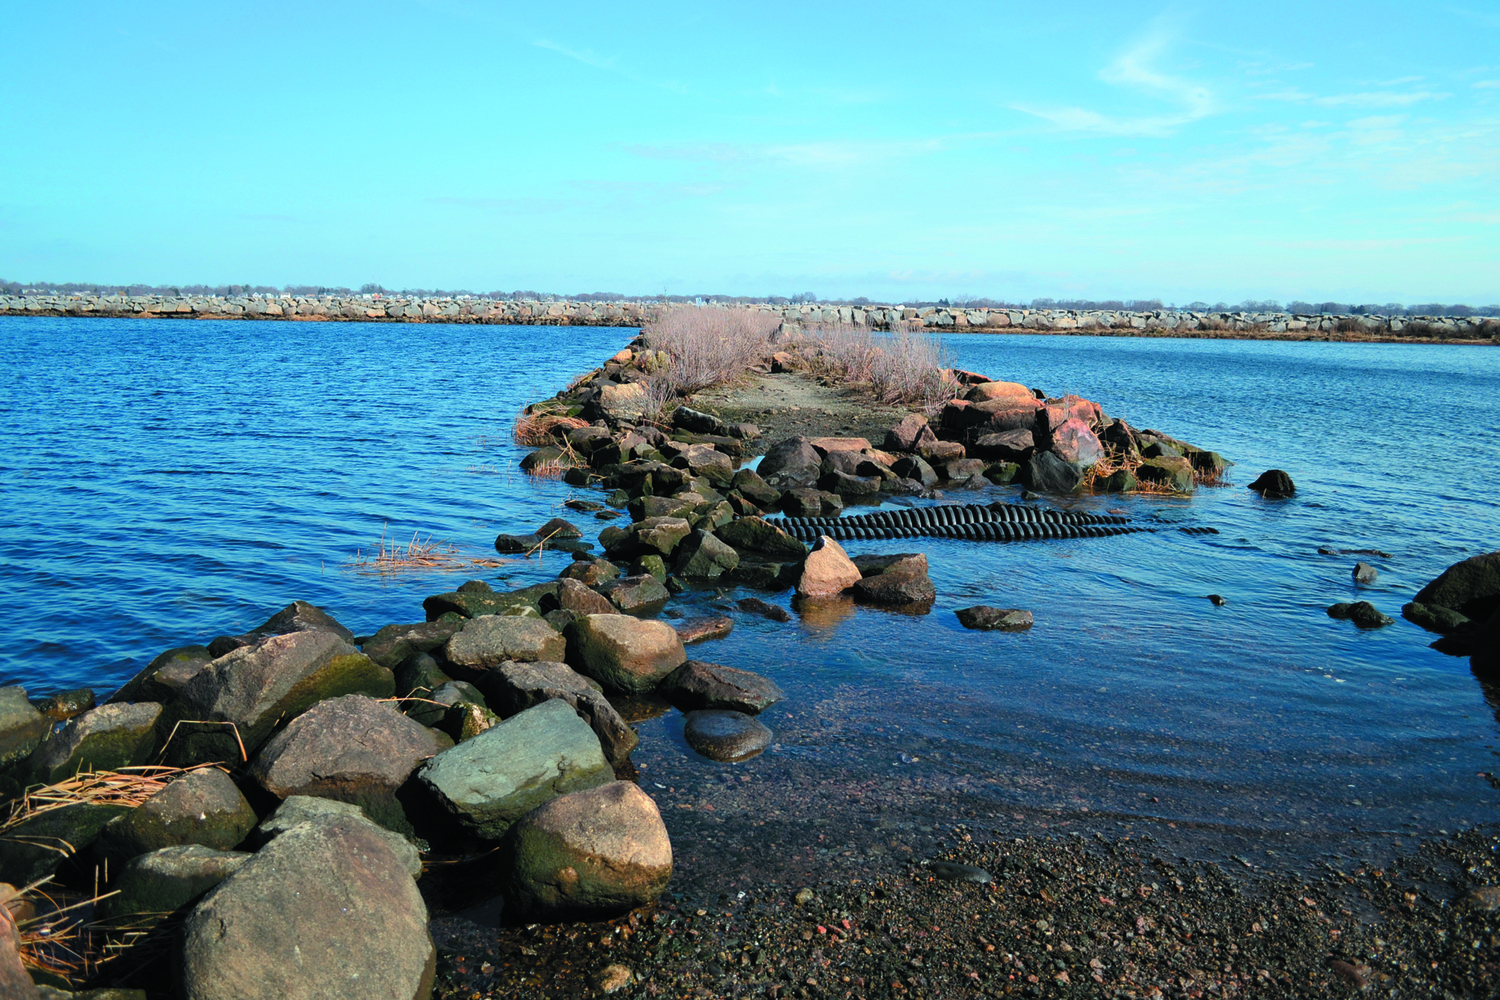 ON THE ROCKS: Two perilous sections of the jetty leading out to the breakwater are shown here, which could be remedied by a new causeway – the focus area of a new RFP released by the city.